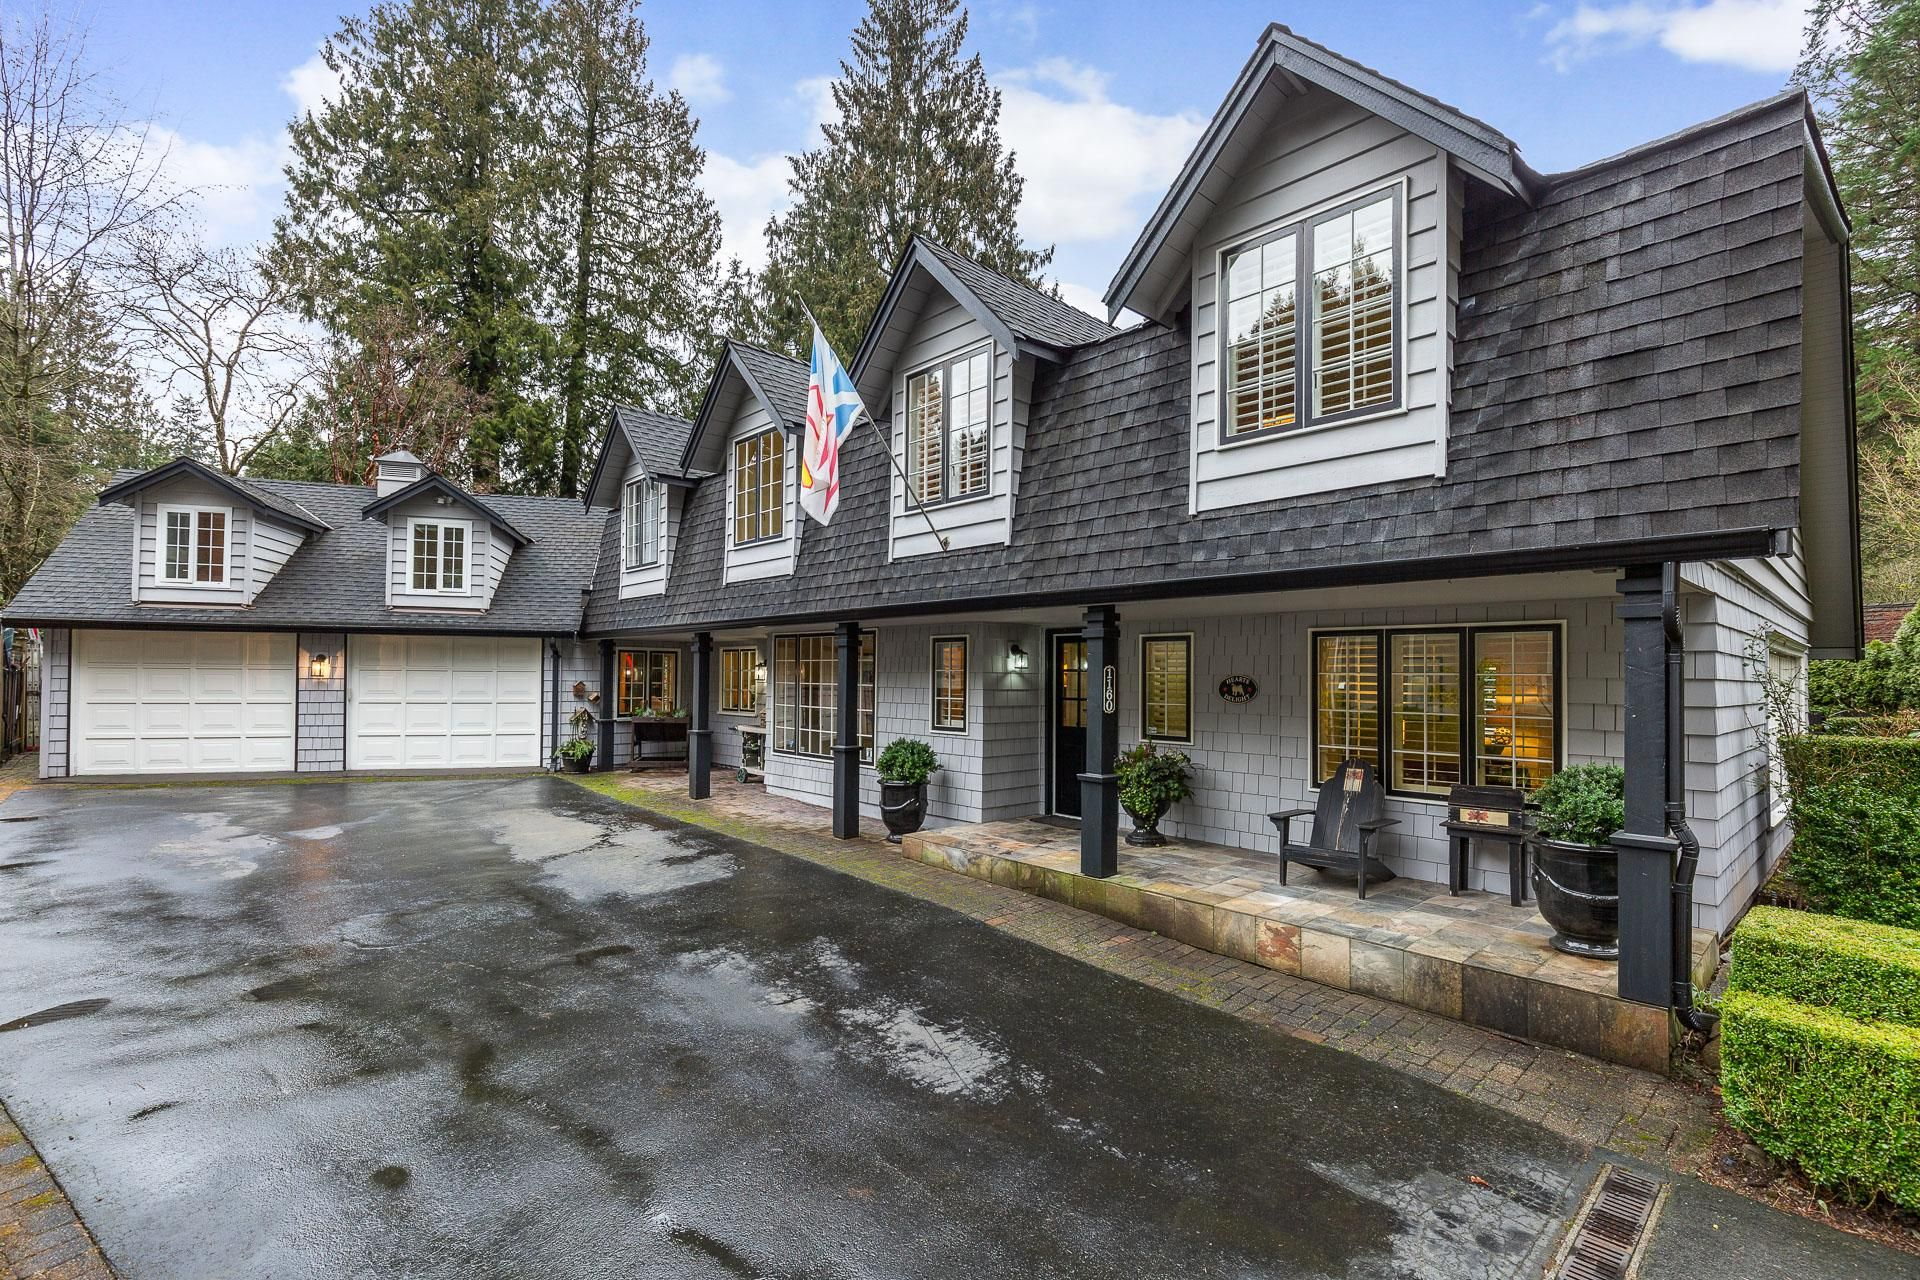 Main Photo: 1160 Hilary Place in North Vancouver: Seymour NV House for sale : MLS®# R2336427